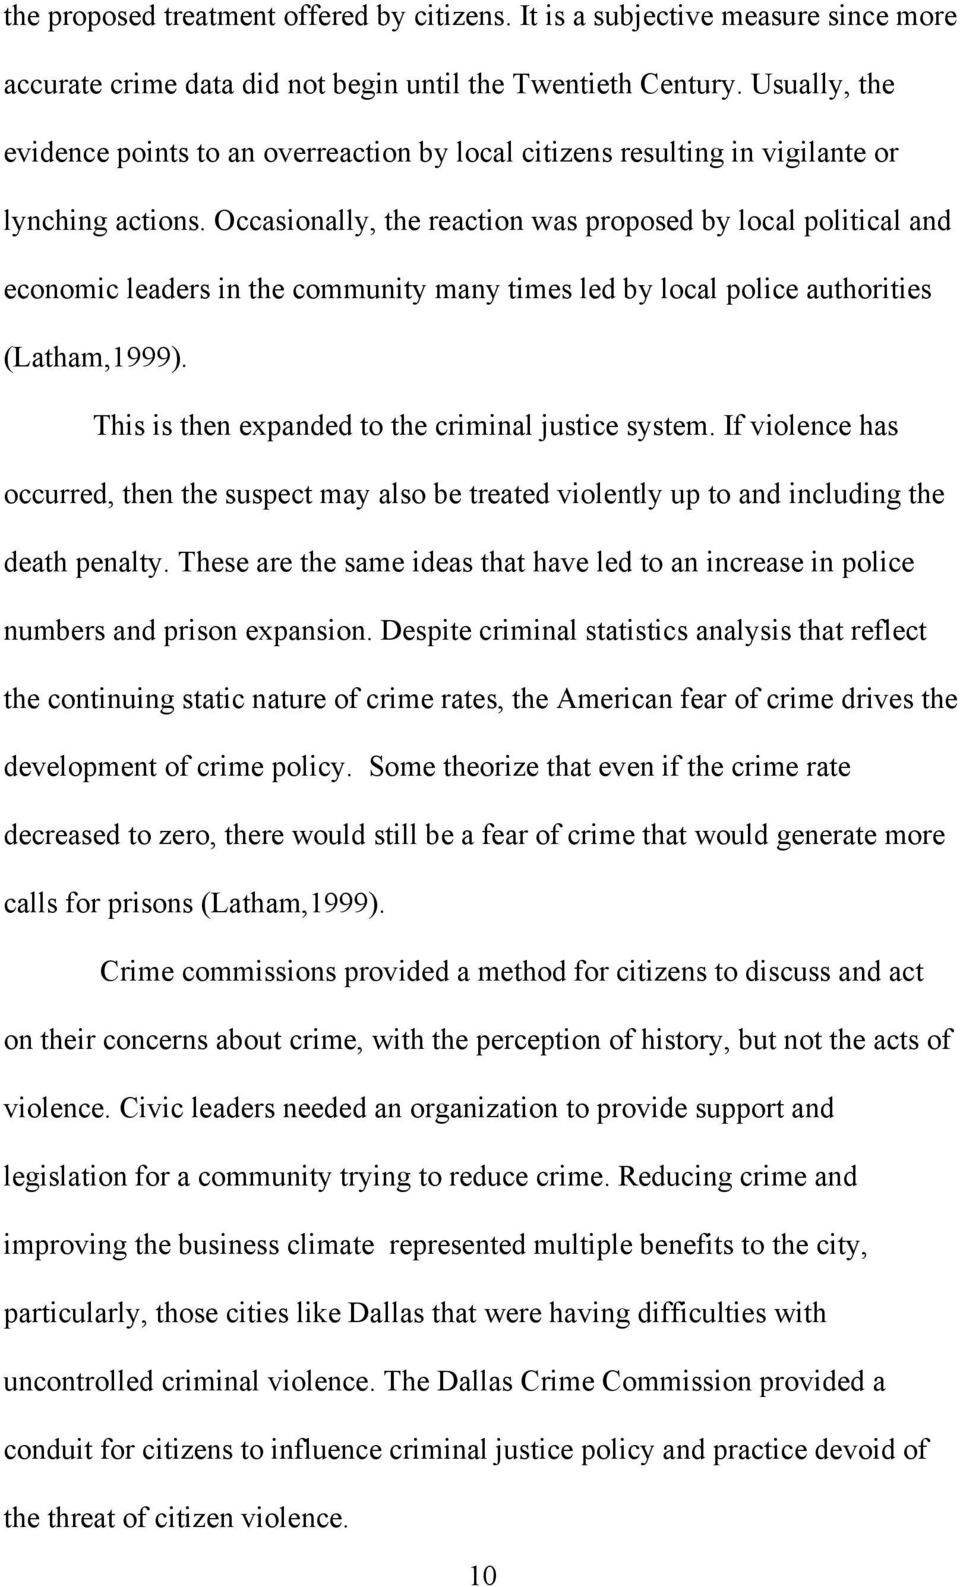 Occasionally, the reaction was proposed by local political and economic leaders in the community many times led by local police authorities (Latham,1999).